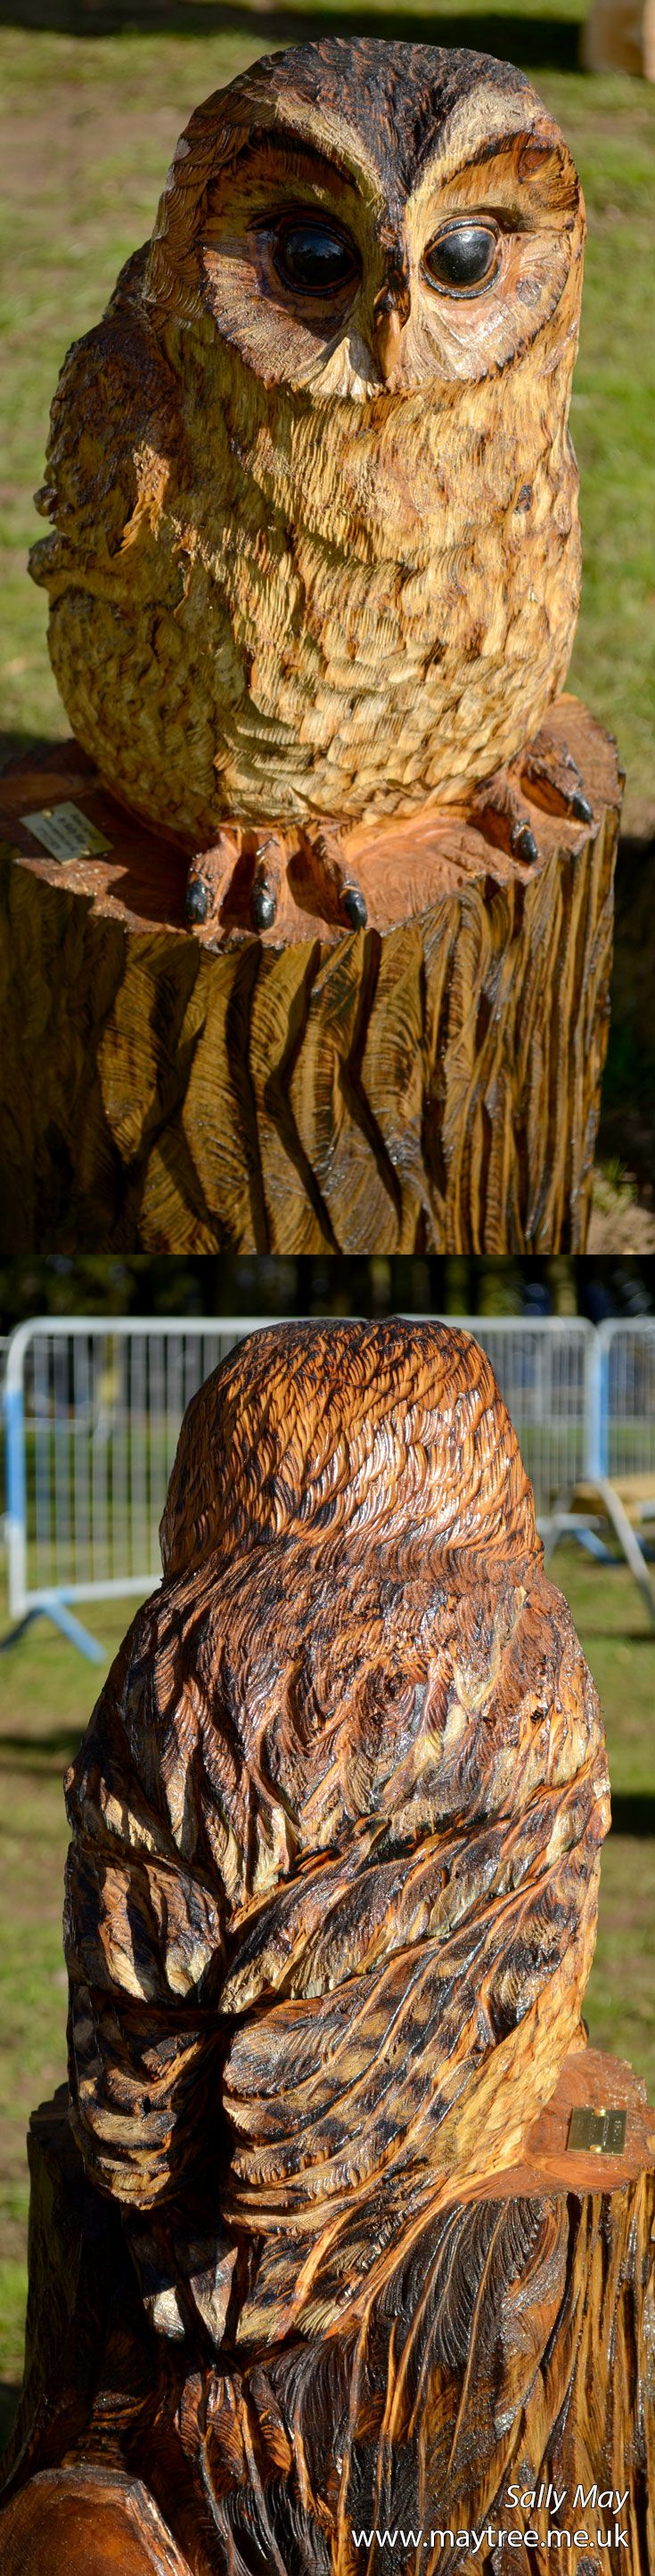 Tawny owl chainsaw carving by sally may … woodworks pinte…